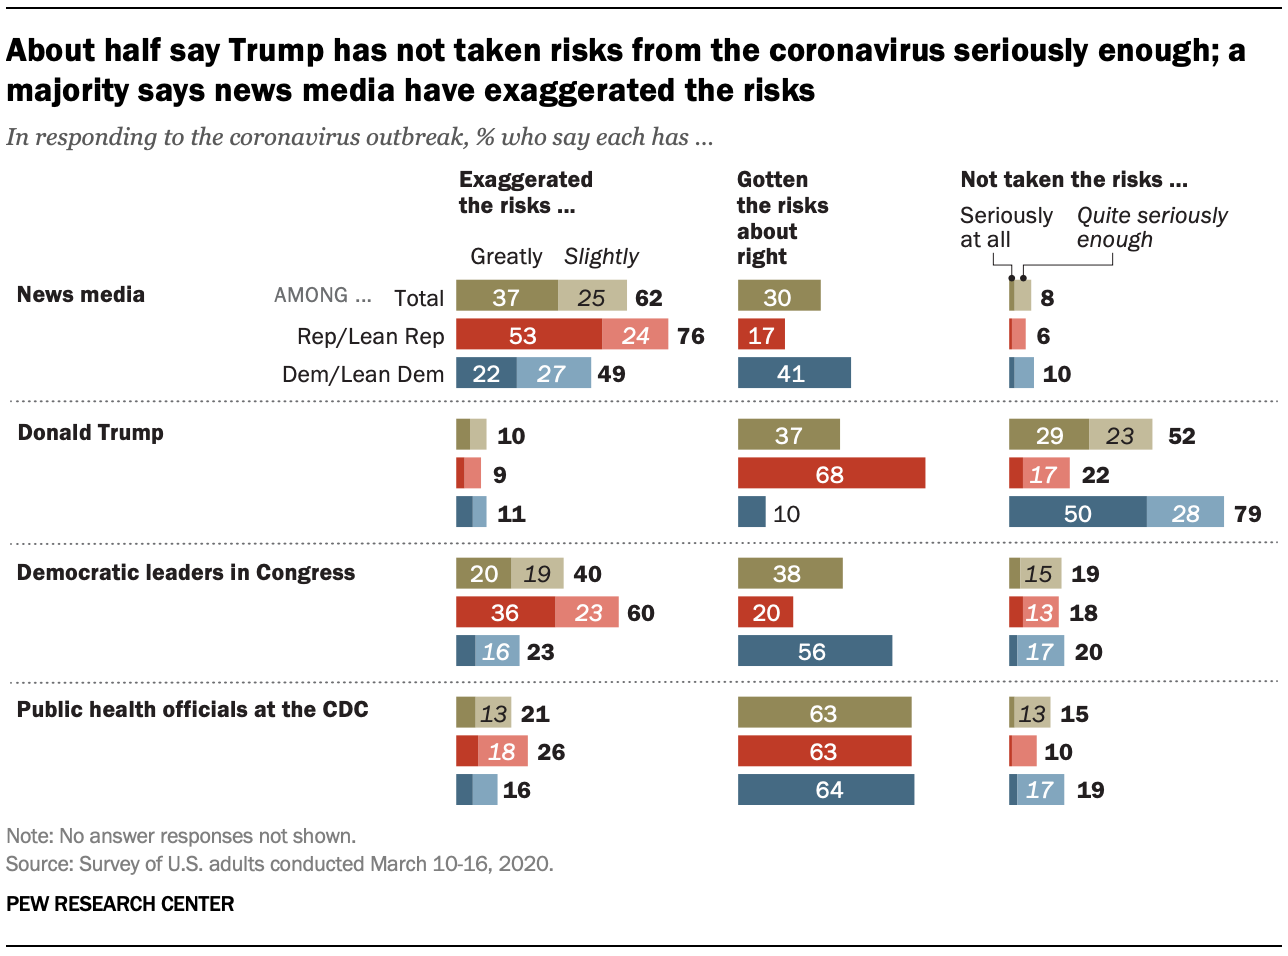 About half say Trump has not taken risks from the coronavirus seriously enough; a majority says news media have exaggerated the risks